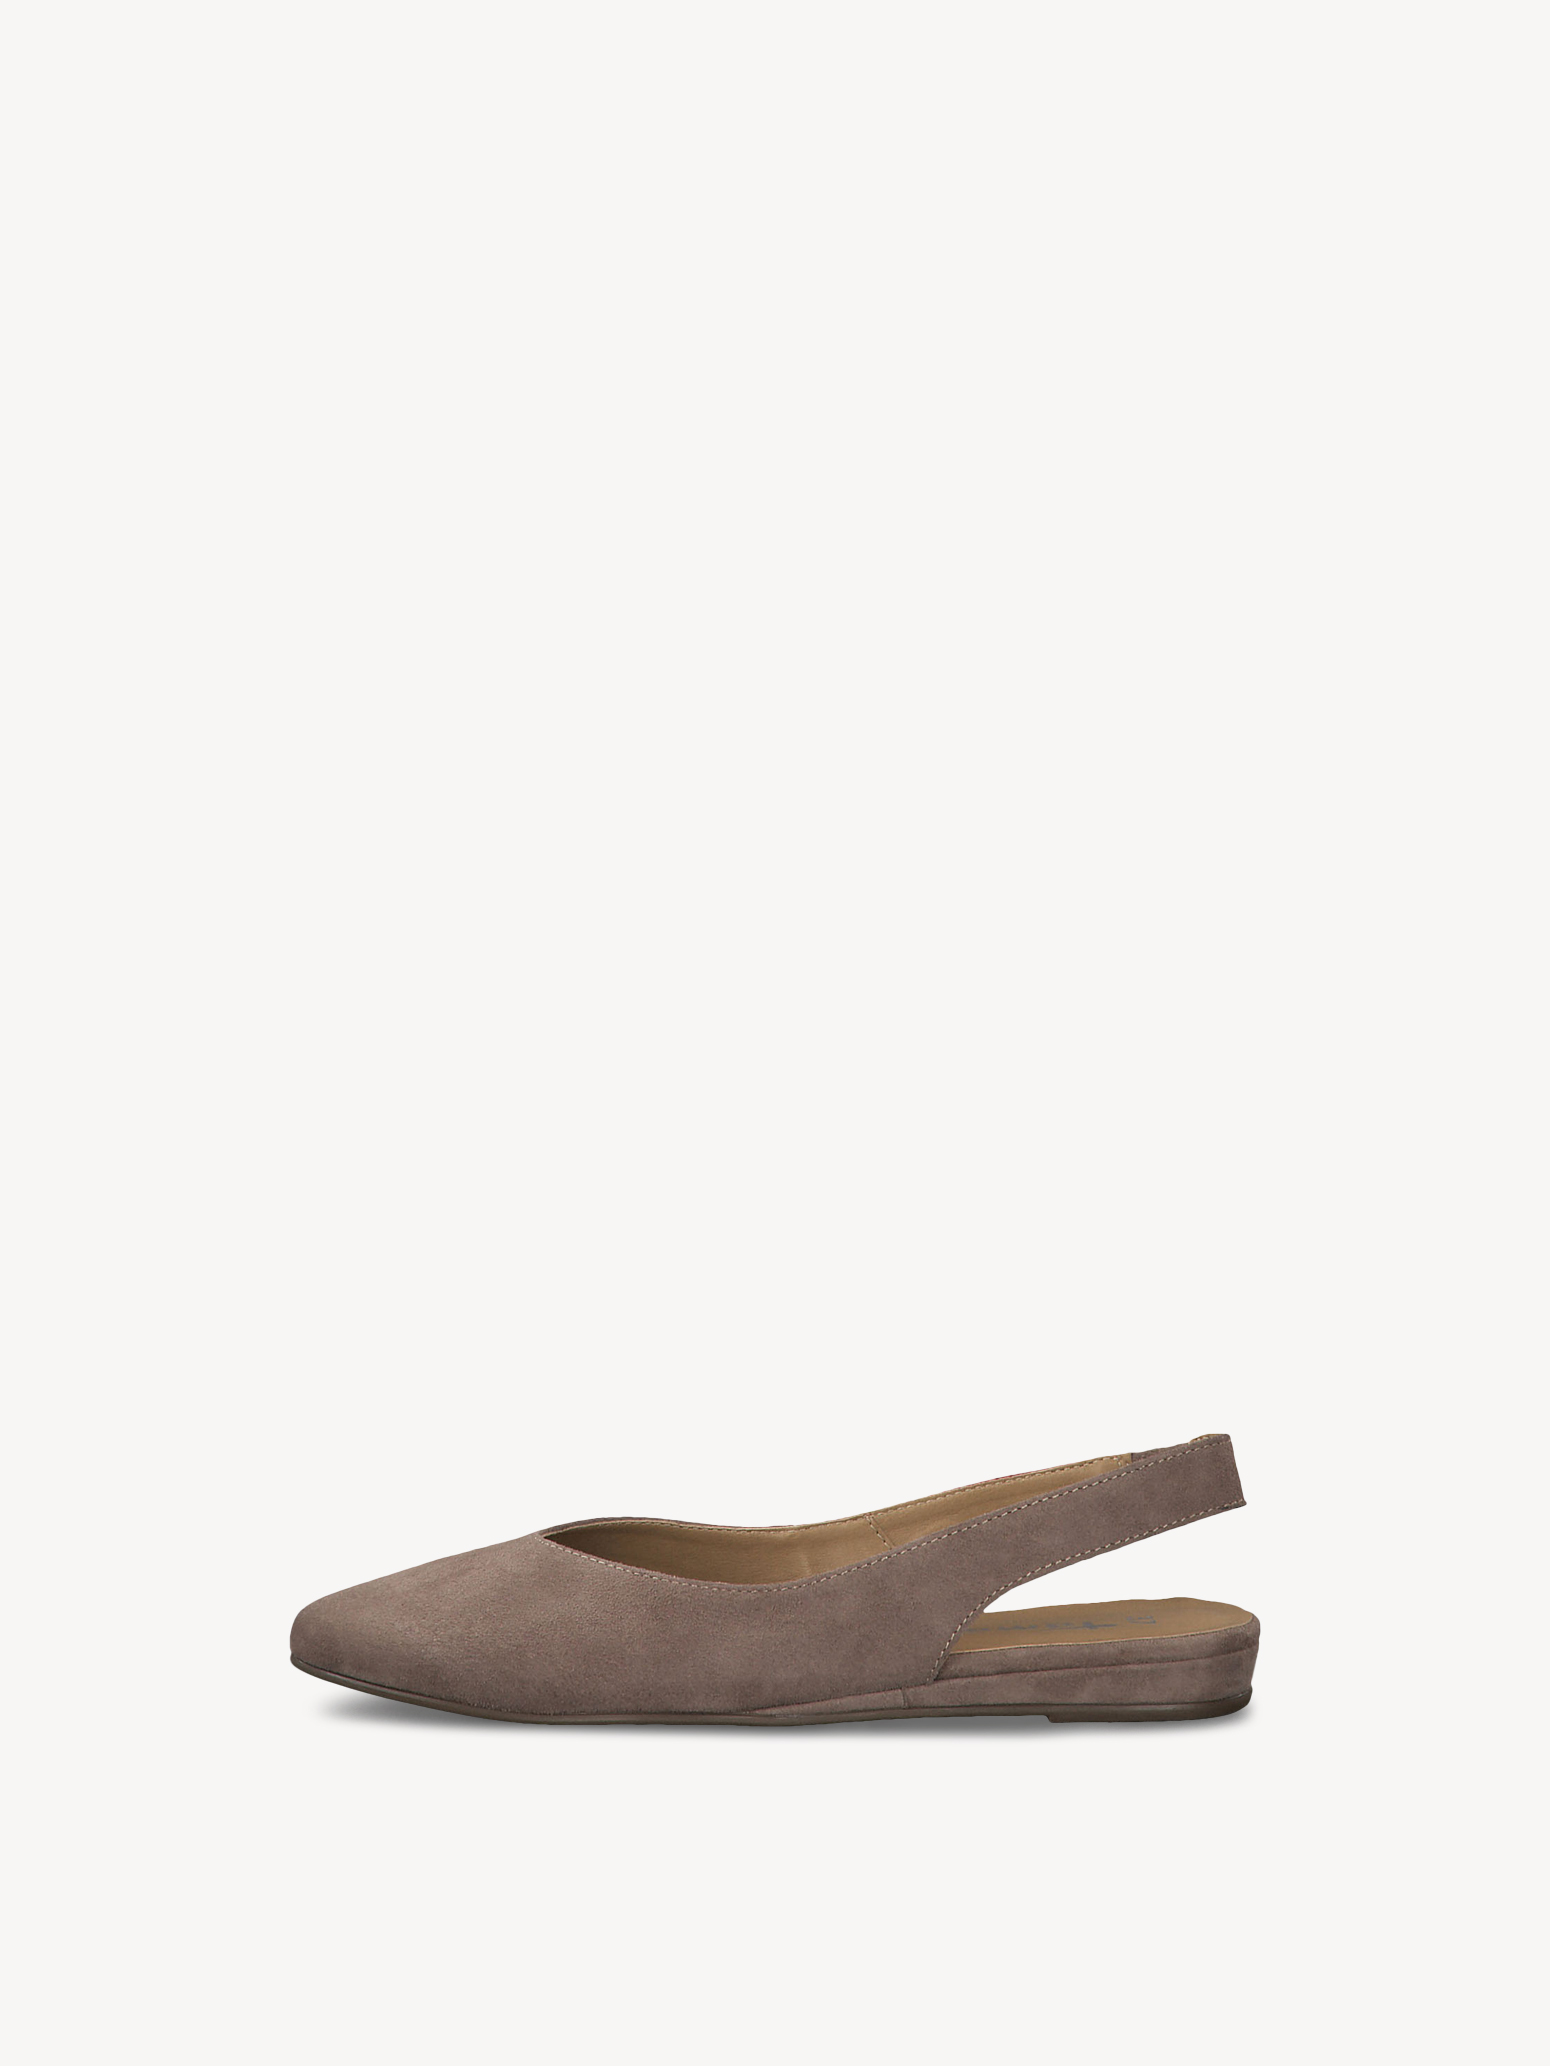 lowest price 9b771 06cad sling pumps